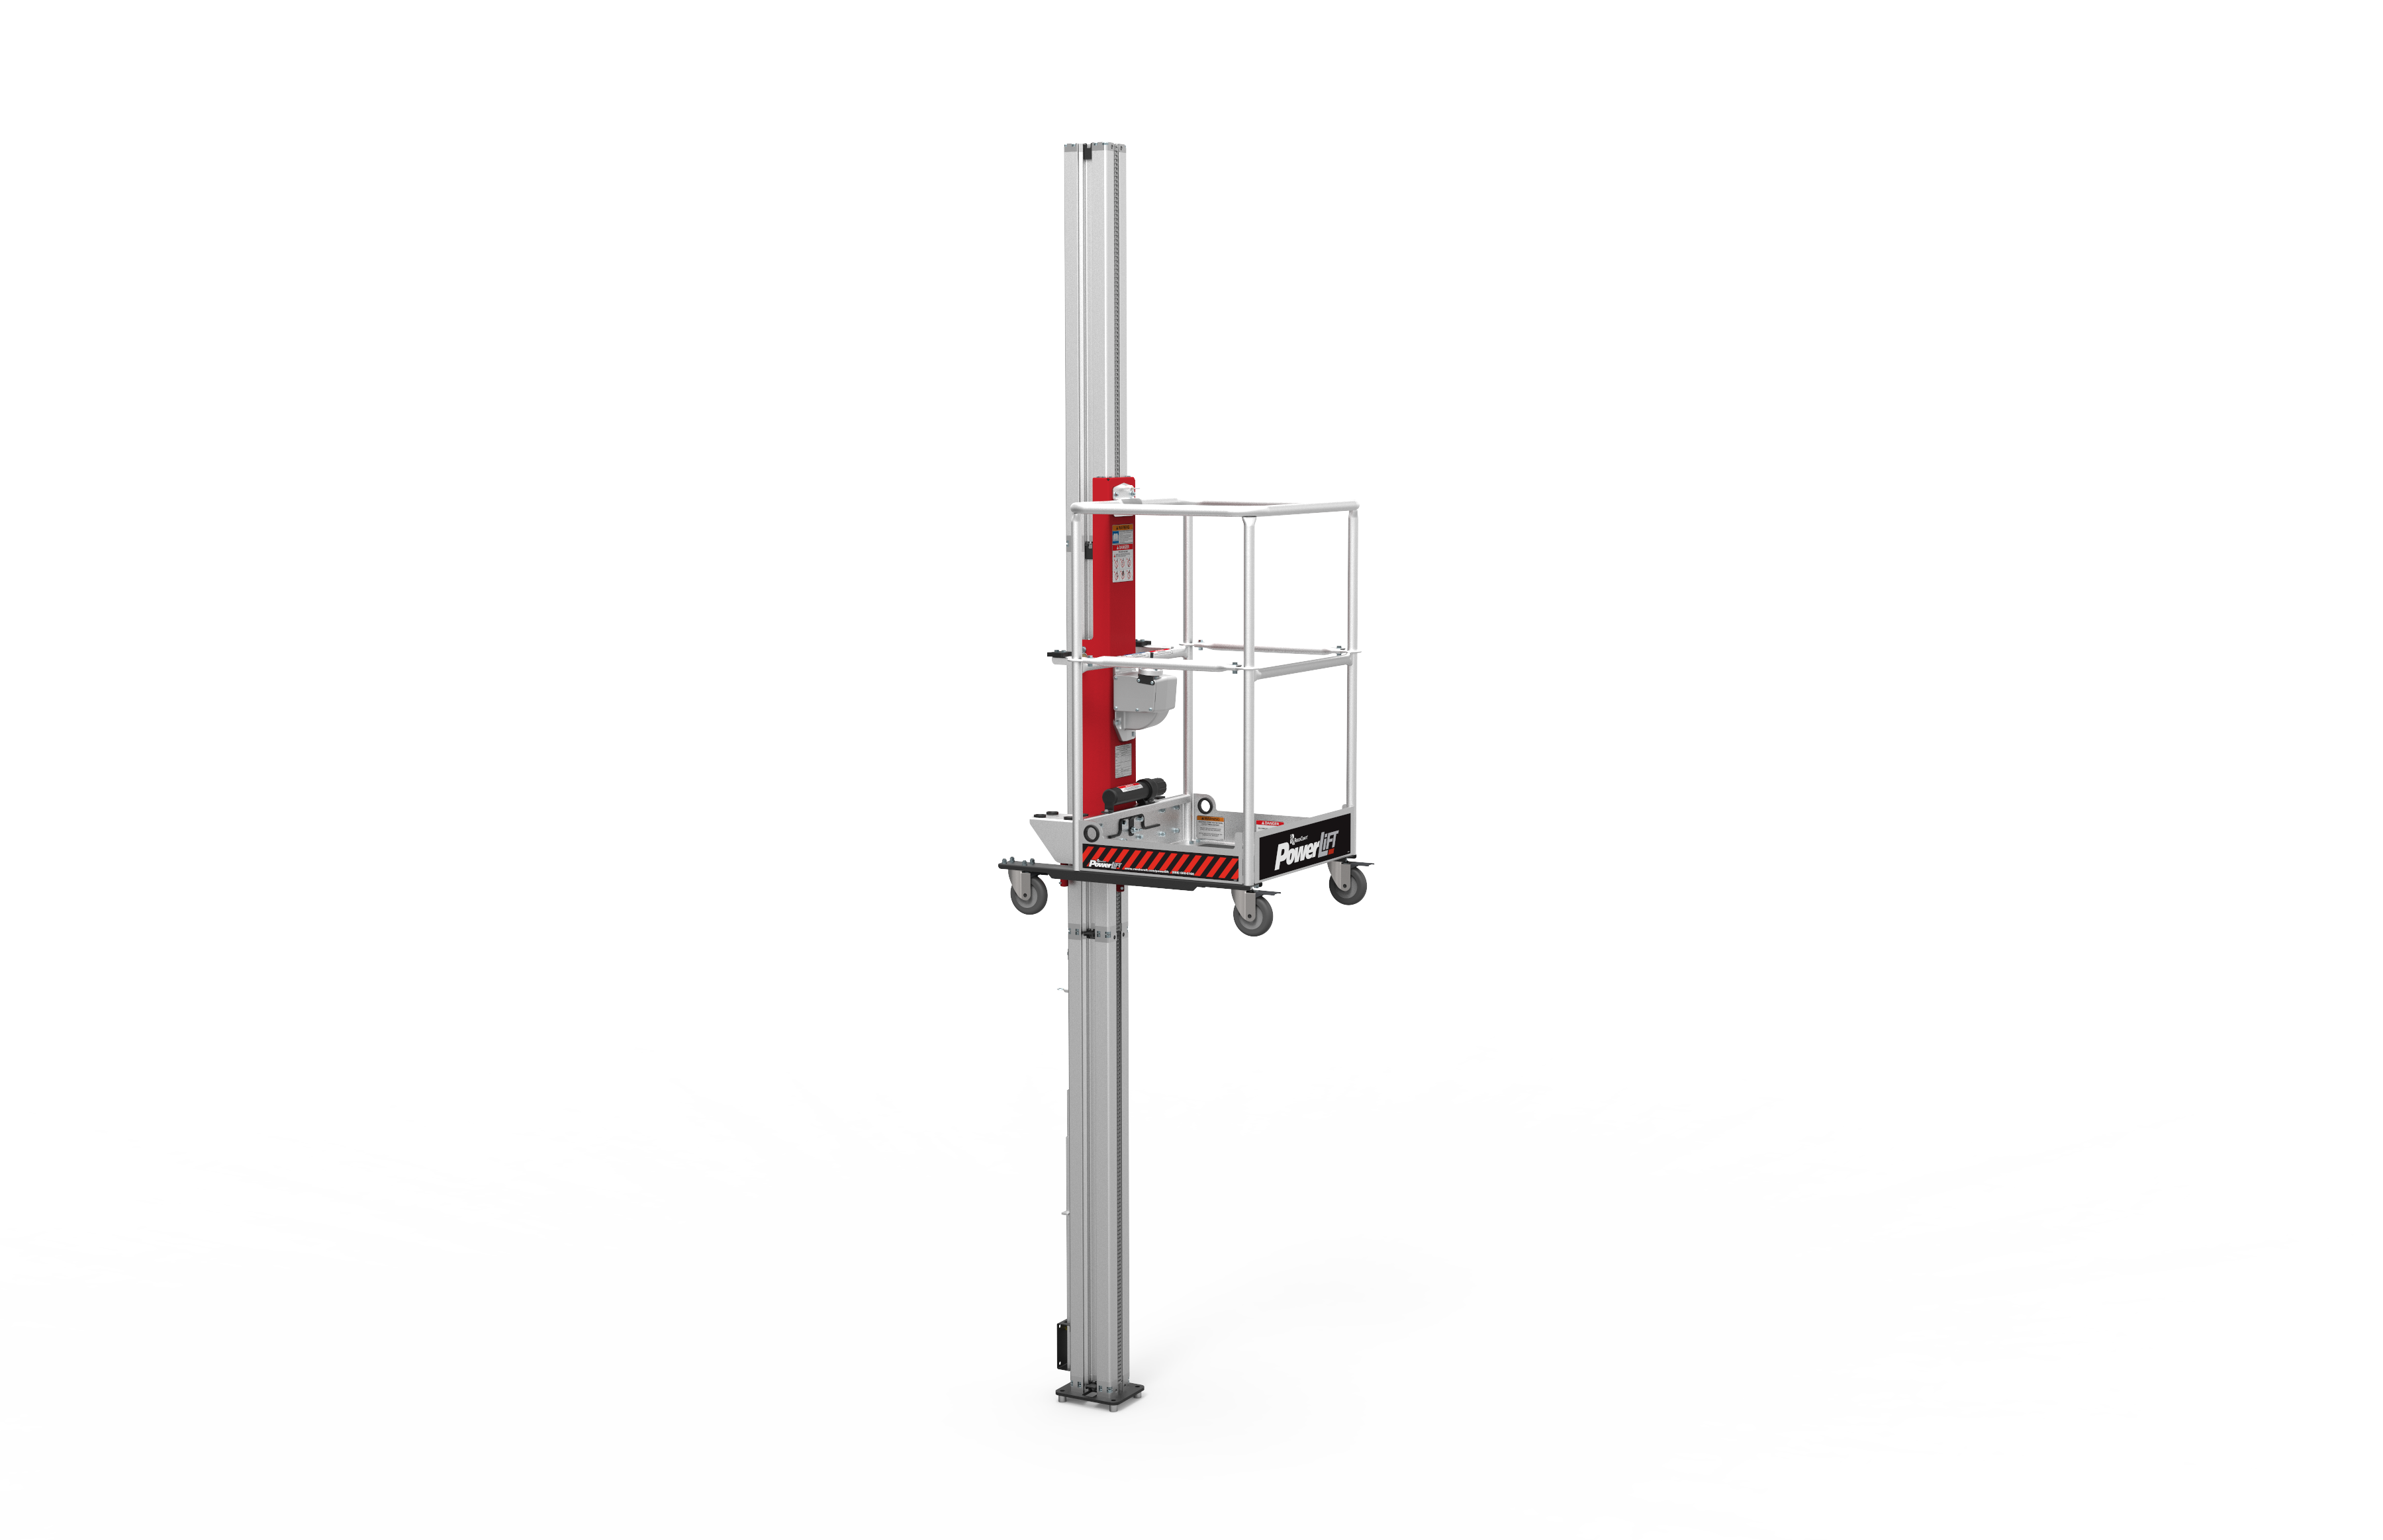 pl_stowed_fixed_base752.png